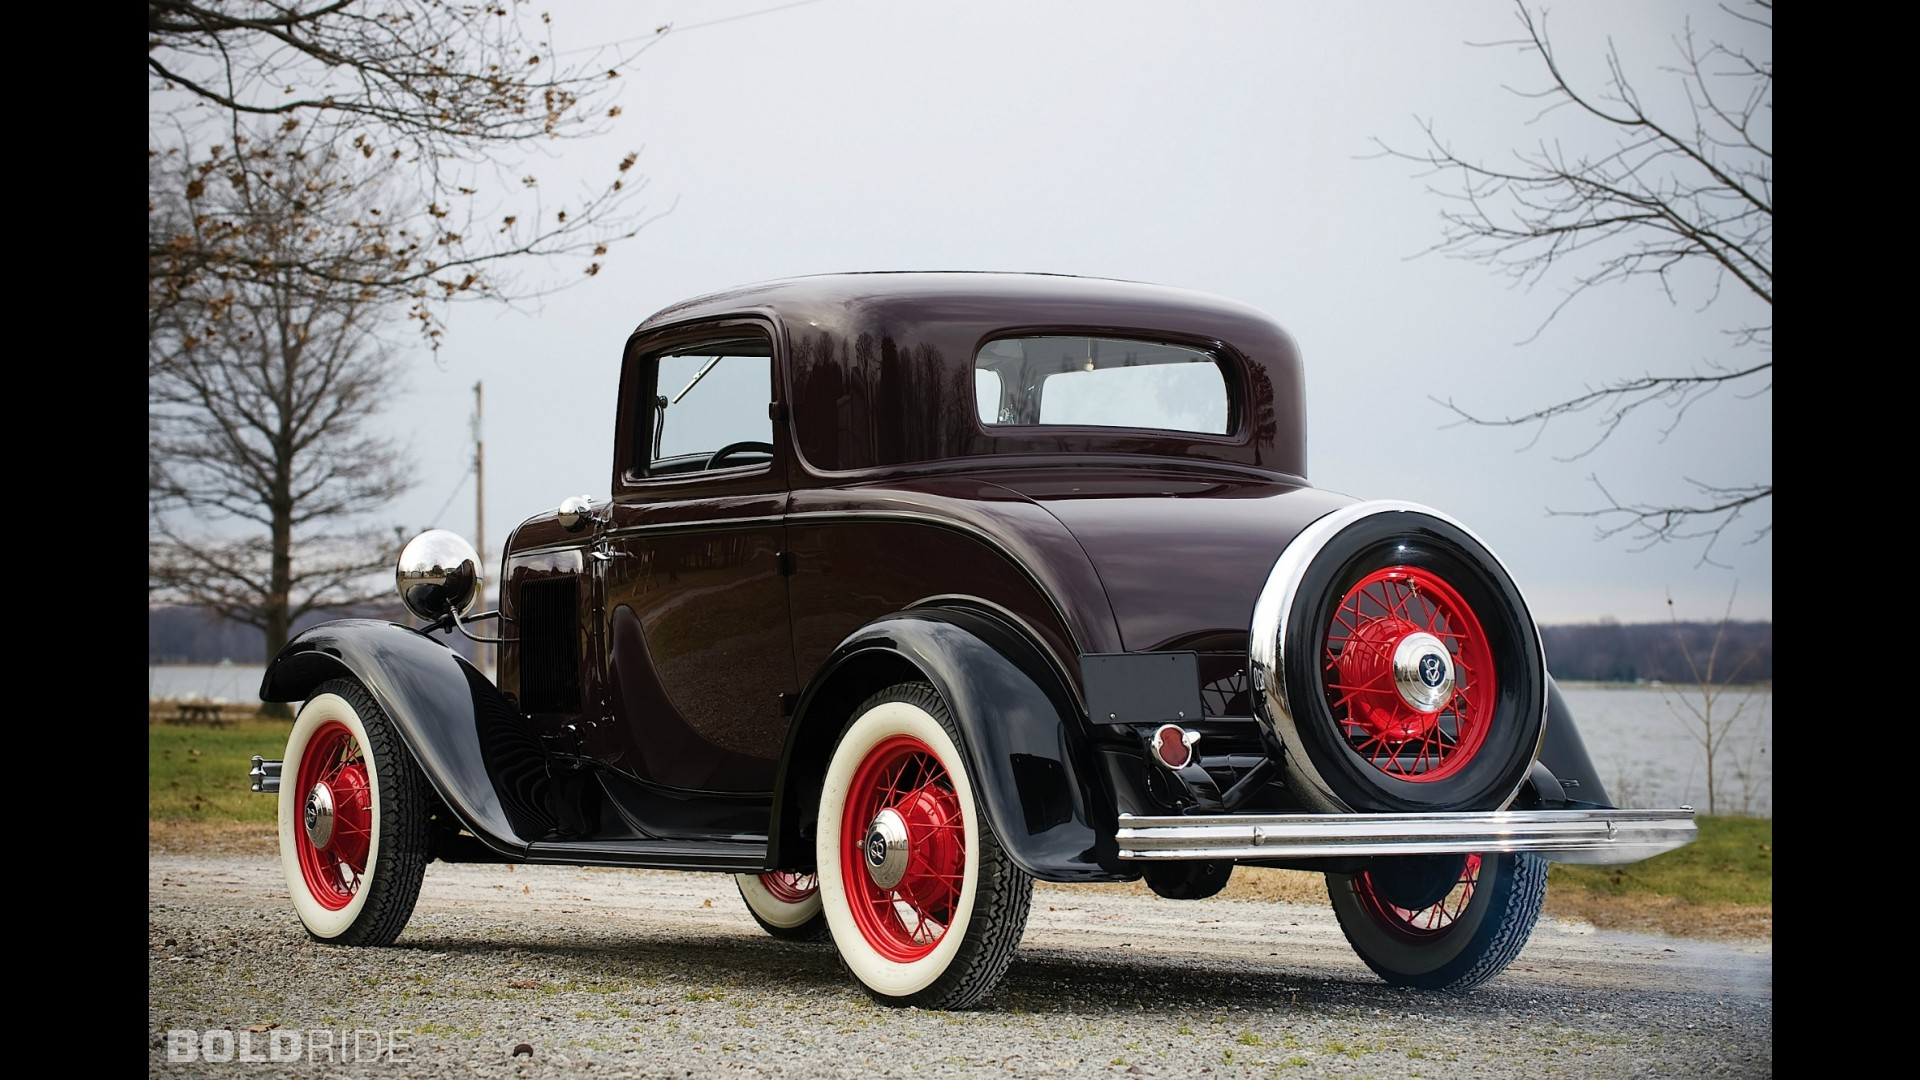 Ford Model 18 DeLuxe Three-Window Coupe